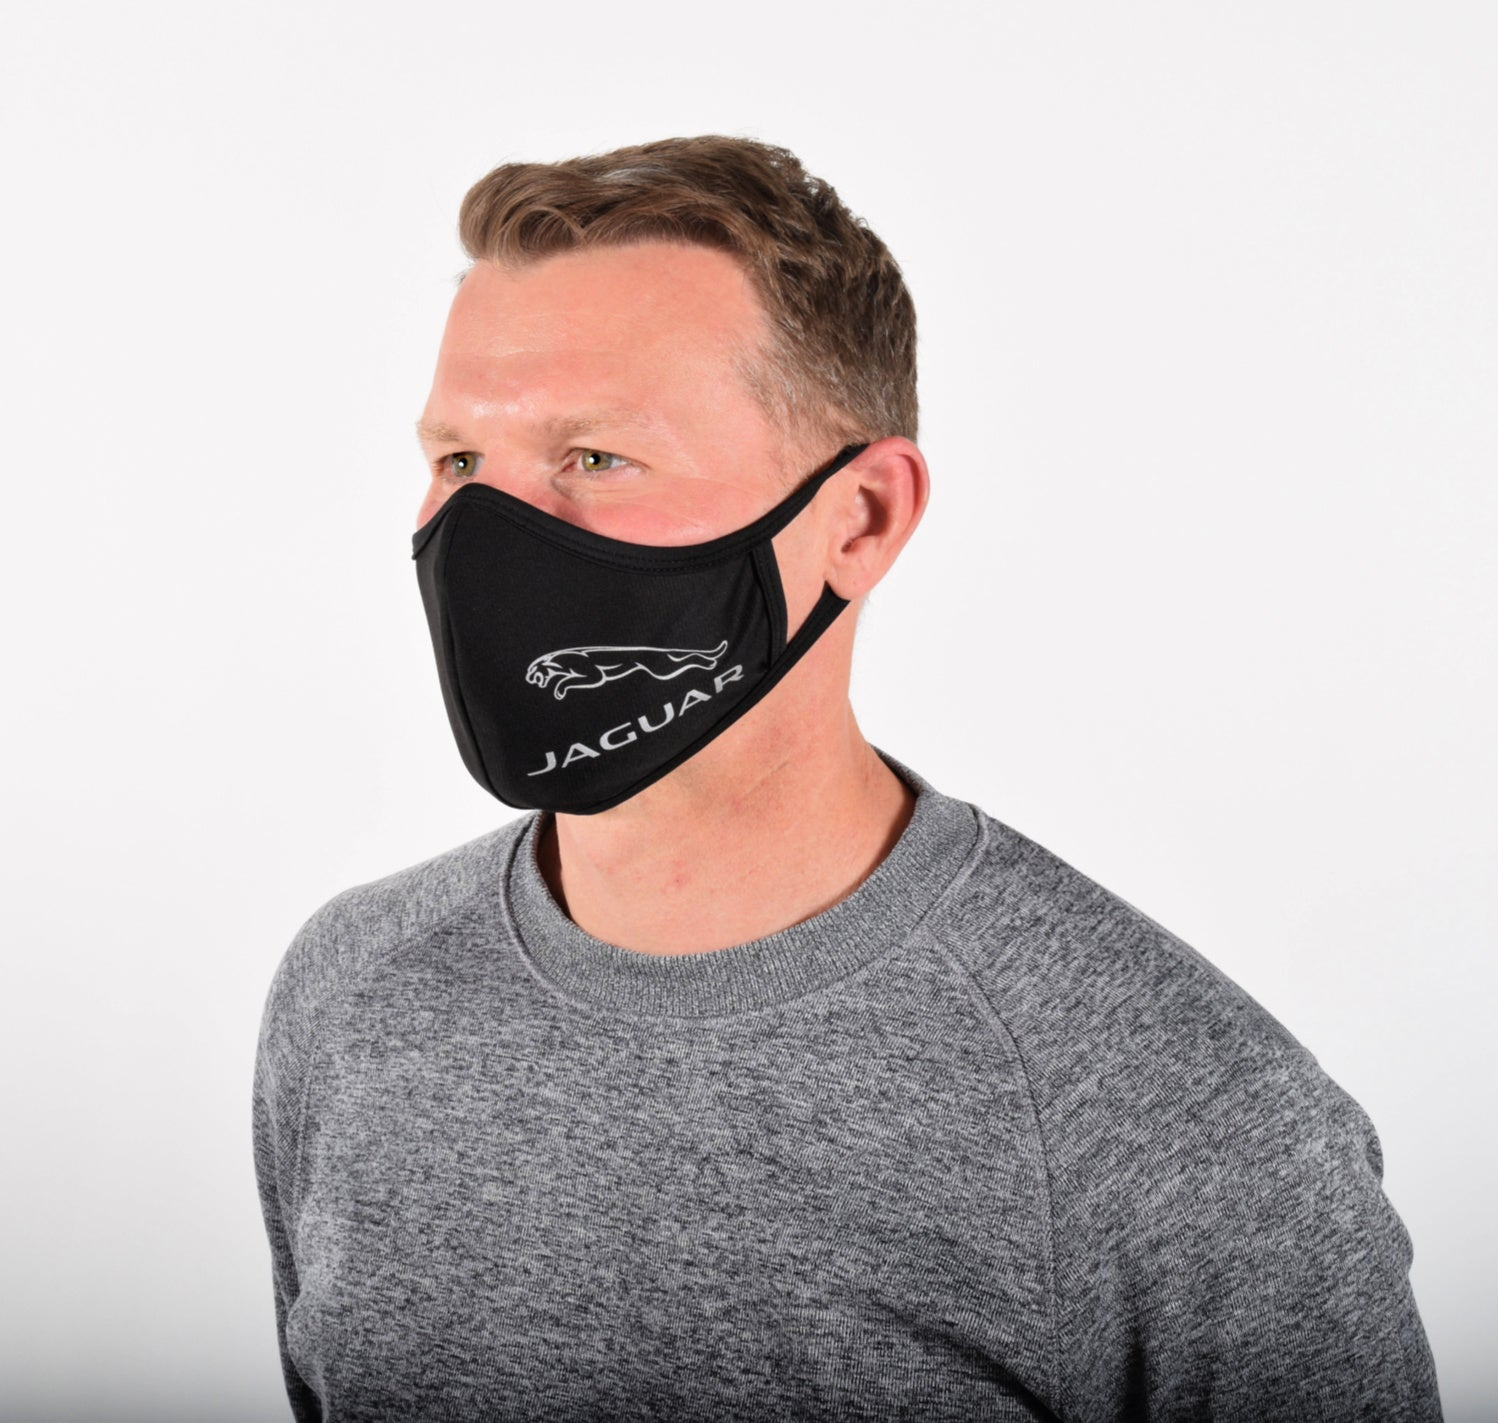 Mens Face Mask For Your Business or Corporation with Sleeve for Filter Of Your Choice Such as N95